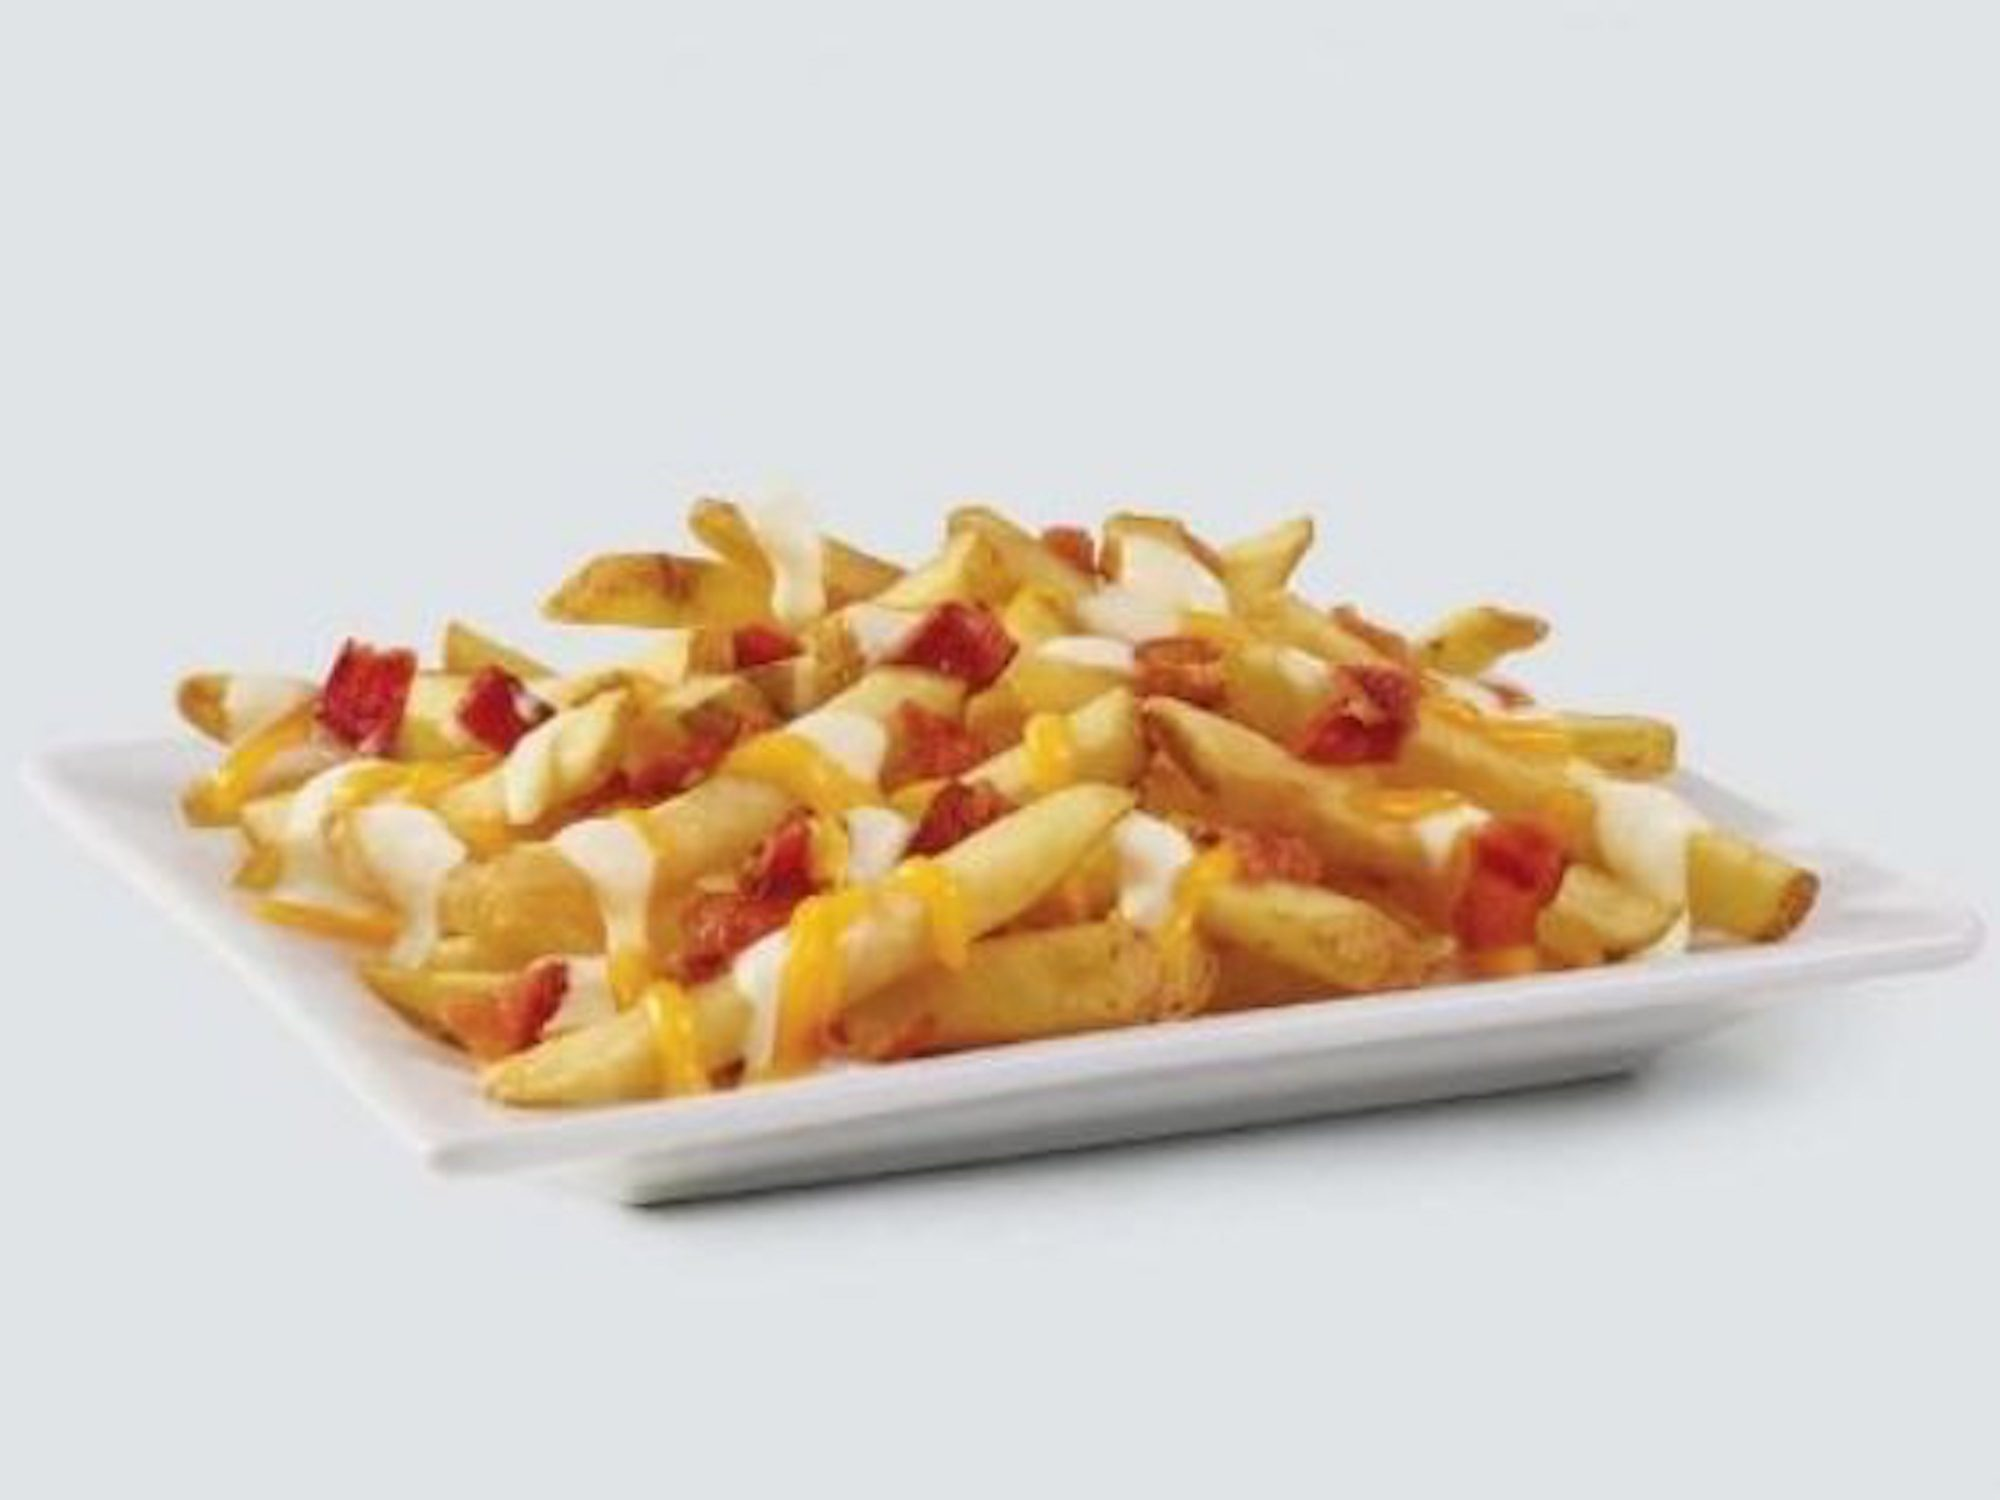 Wendys-Adds-New-Bacon-Pub-Fries-To-The-Menu.jpg